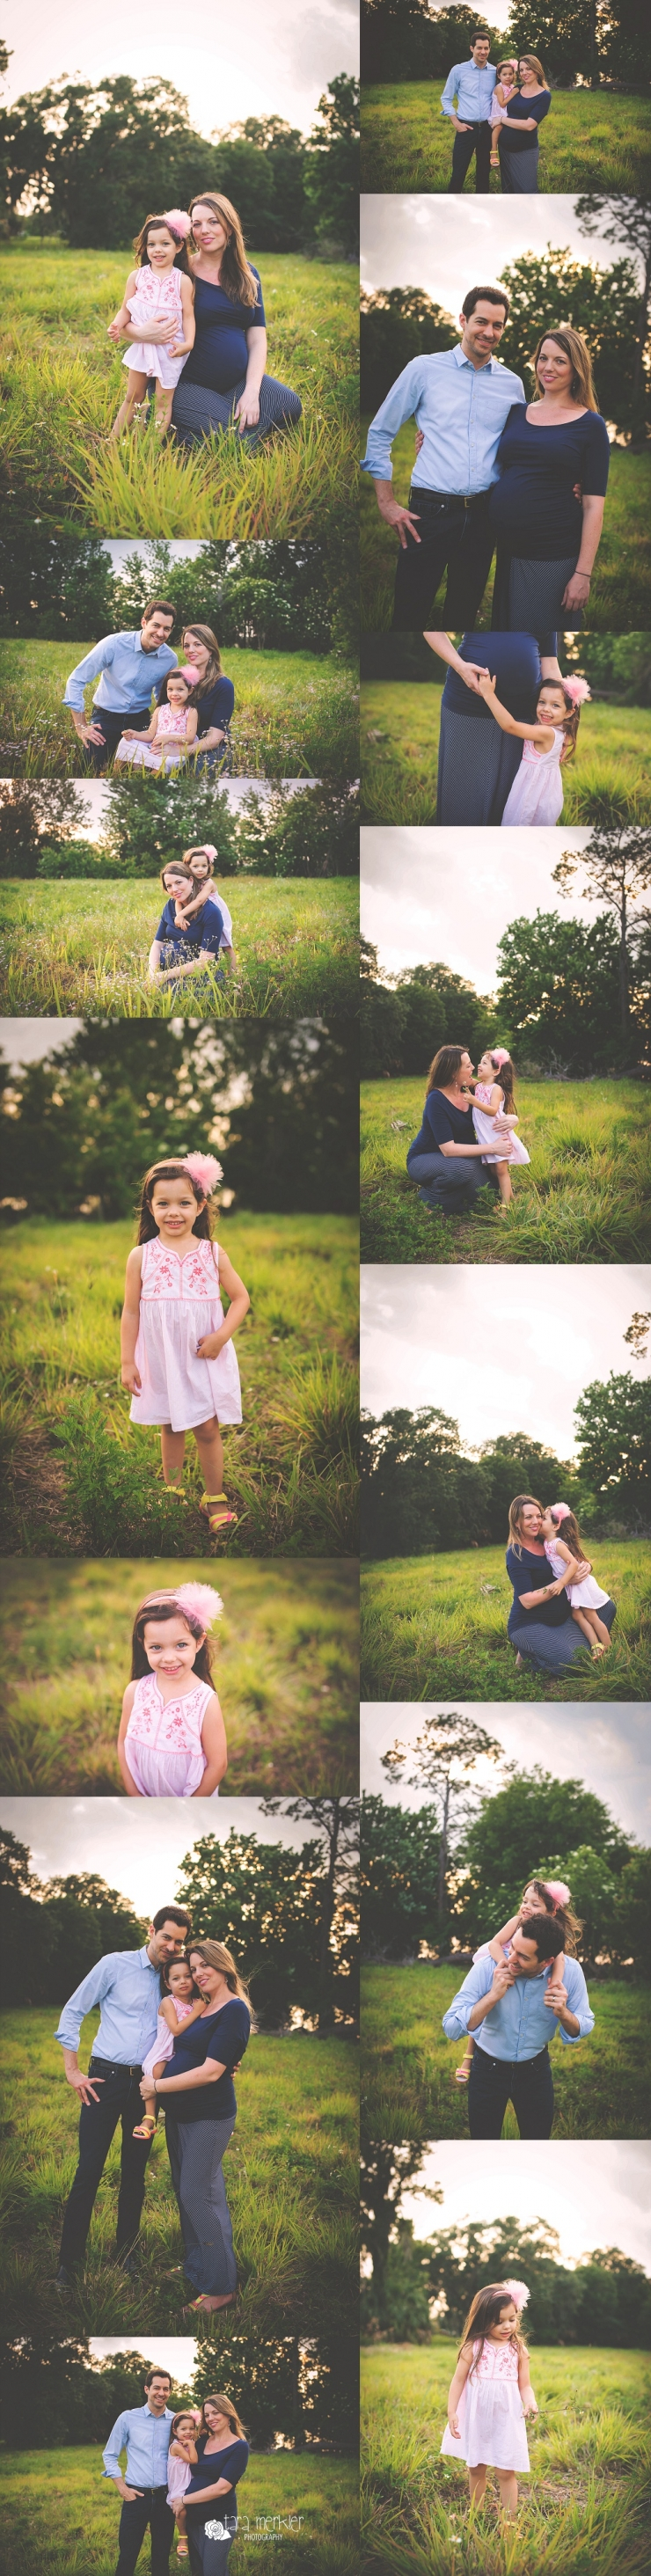 Tara Merkler Photography Orlando, Florida Newborn Photography April 2014_0004.jpg